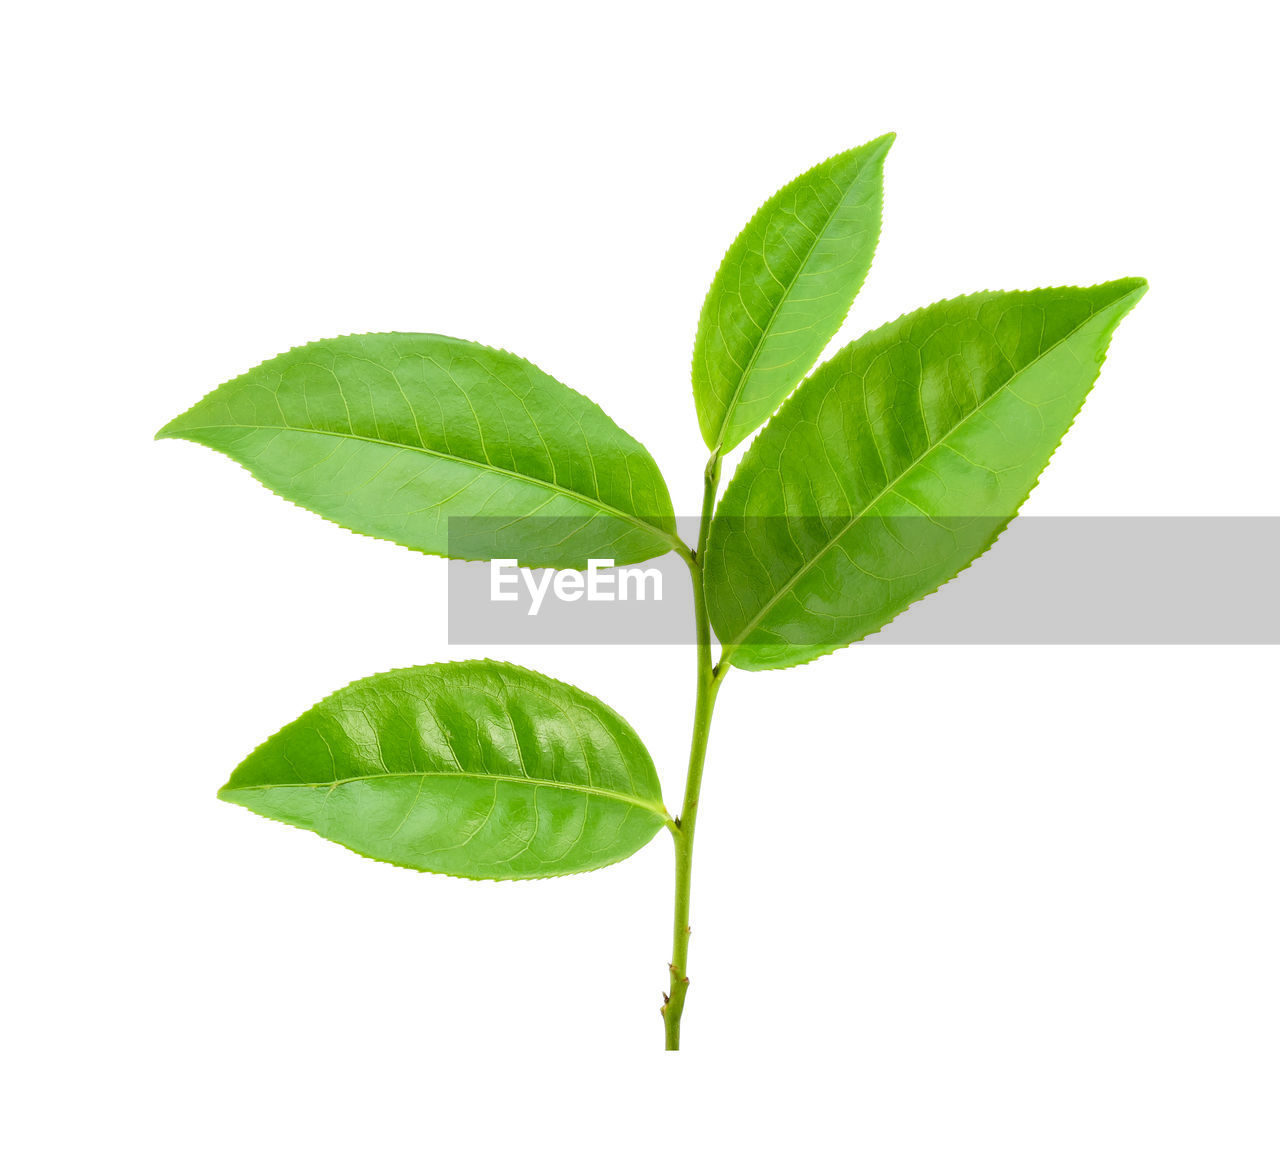 leaf, plant part, cut out, studio shot, white background, green color, plant, nature, close-up, freshness, leaf vein, no people, beauty in nature, herb, indoors, food and drink, food, leaves, herbal medicine, ingredient